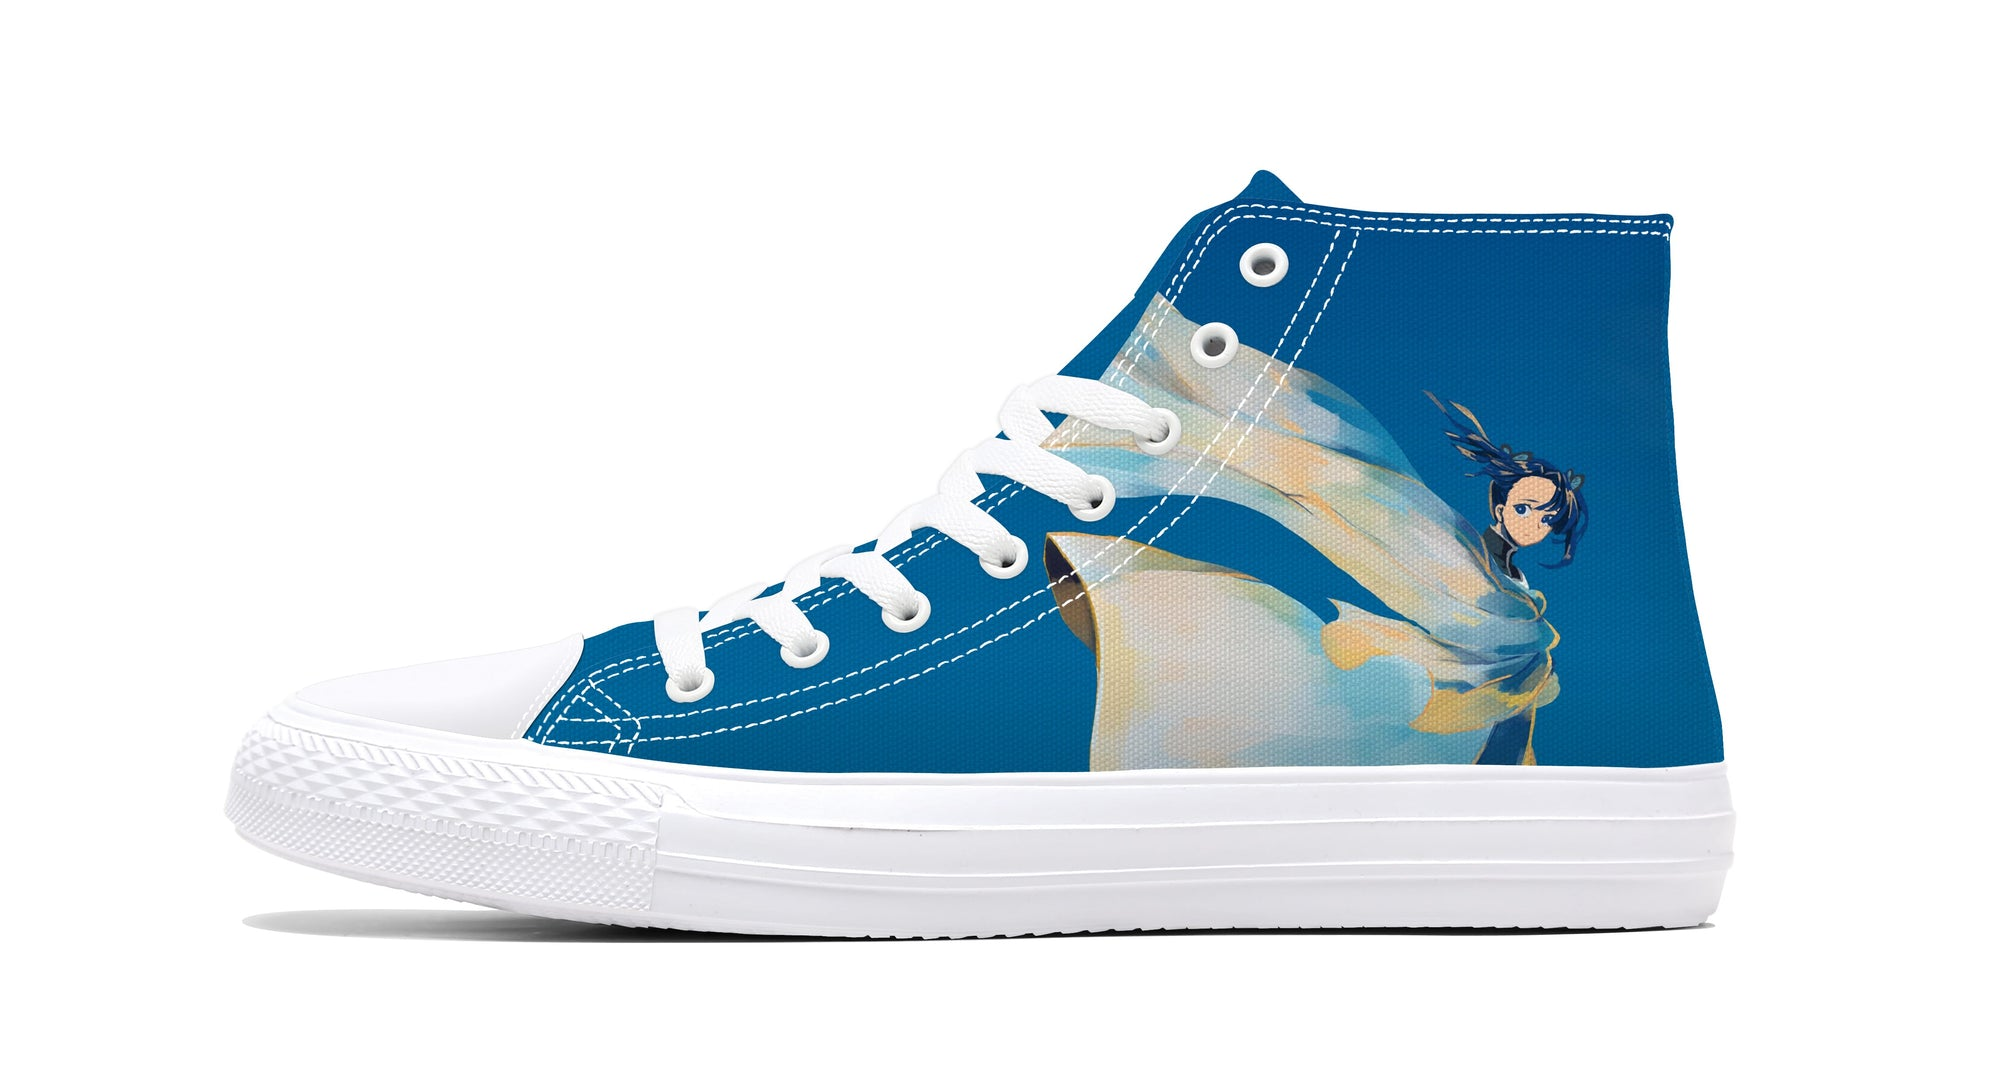 Tsuguko Kanao Blue Sky Painting Sneakers Demon Sneaker Demon Slayer Kimetsu No Yaiba Shoes